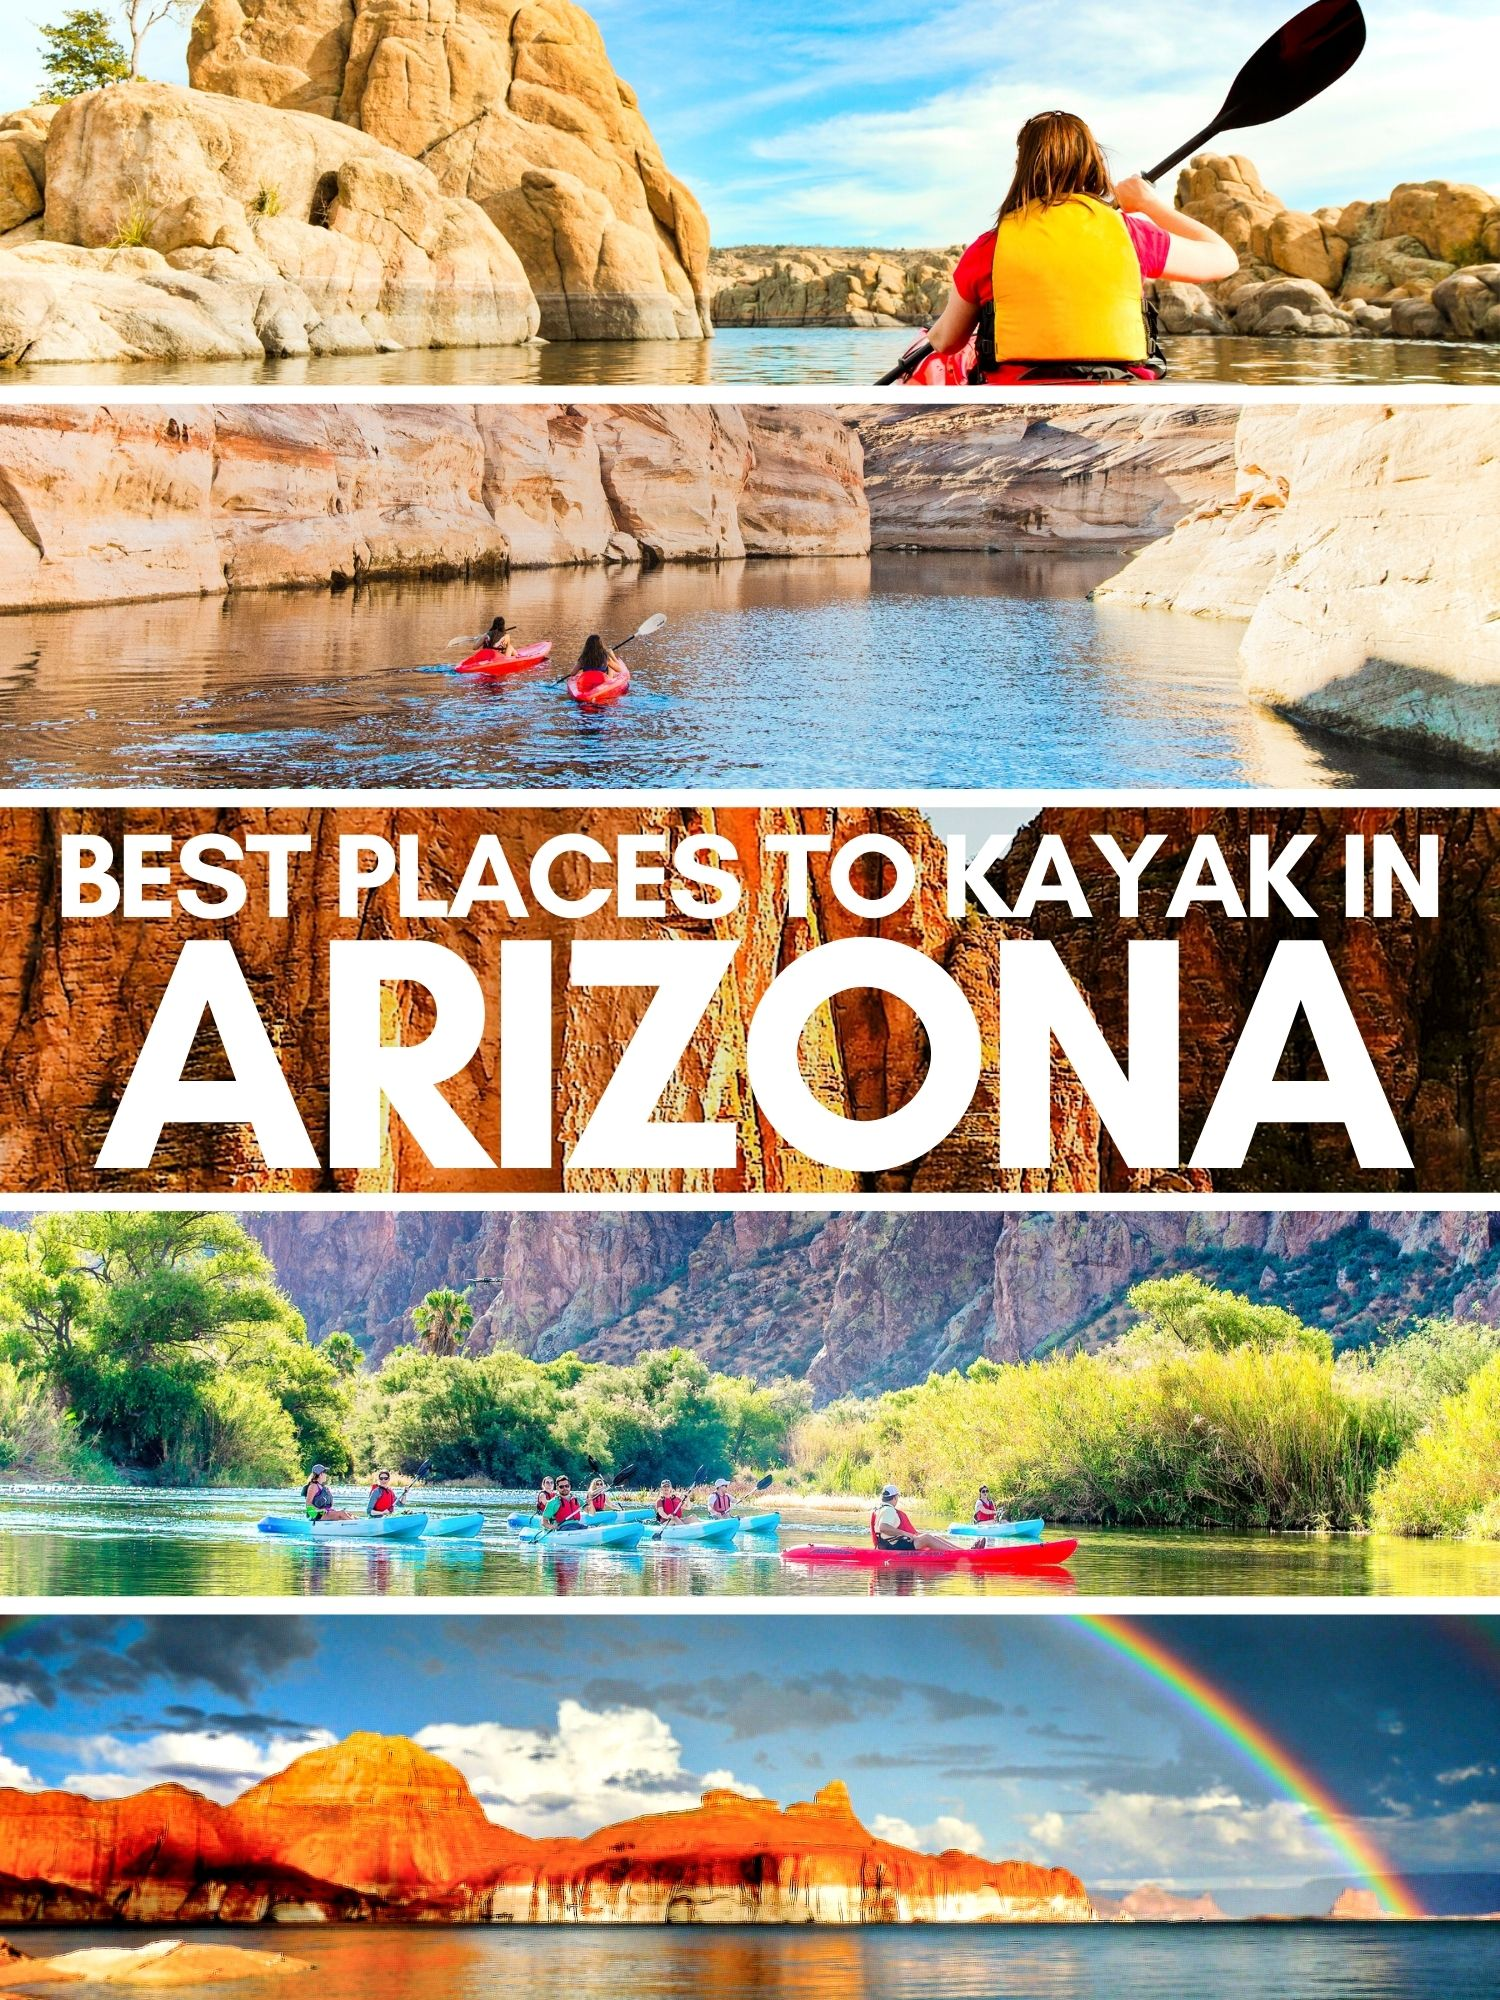 Kayaking in Arizona: beautiful, unique and a very different way to experience the most epic landscapes of the southwest. Famous sights and little known paddling spots around Arizona.